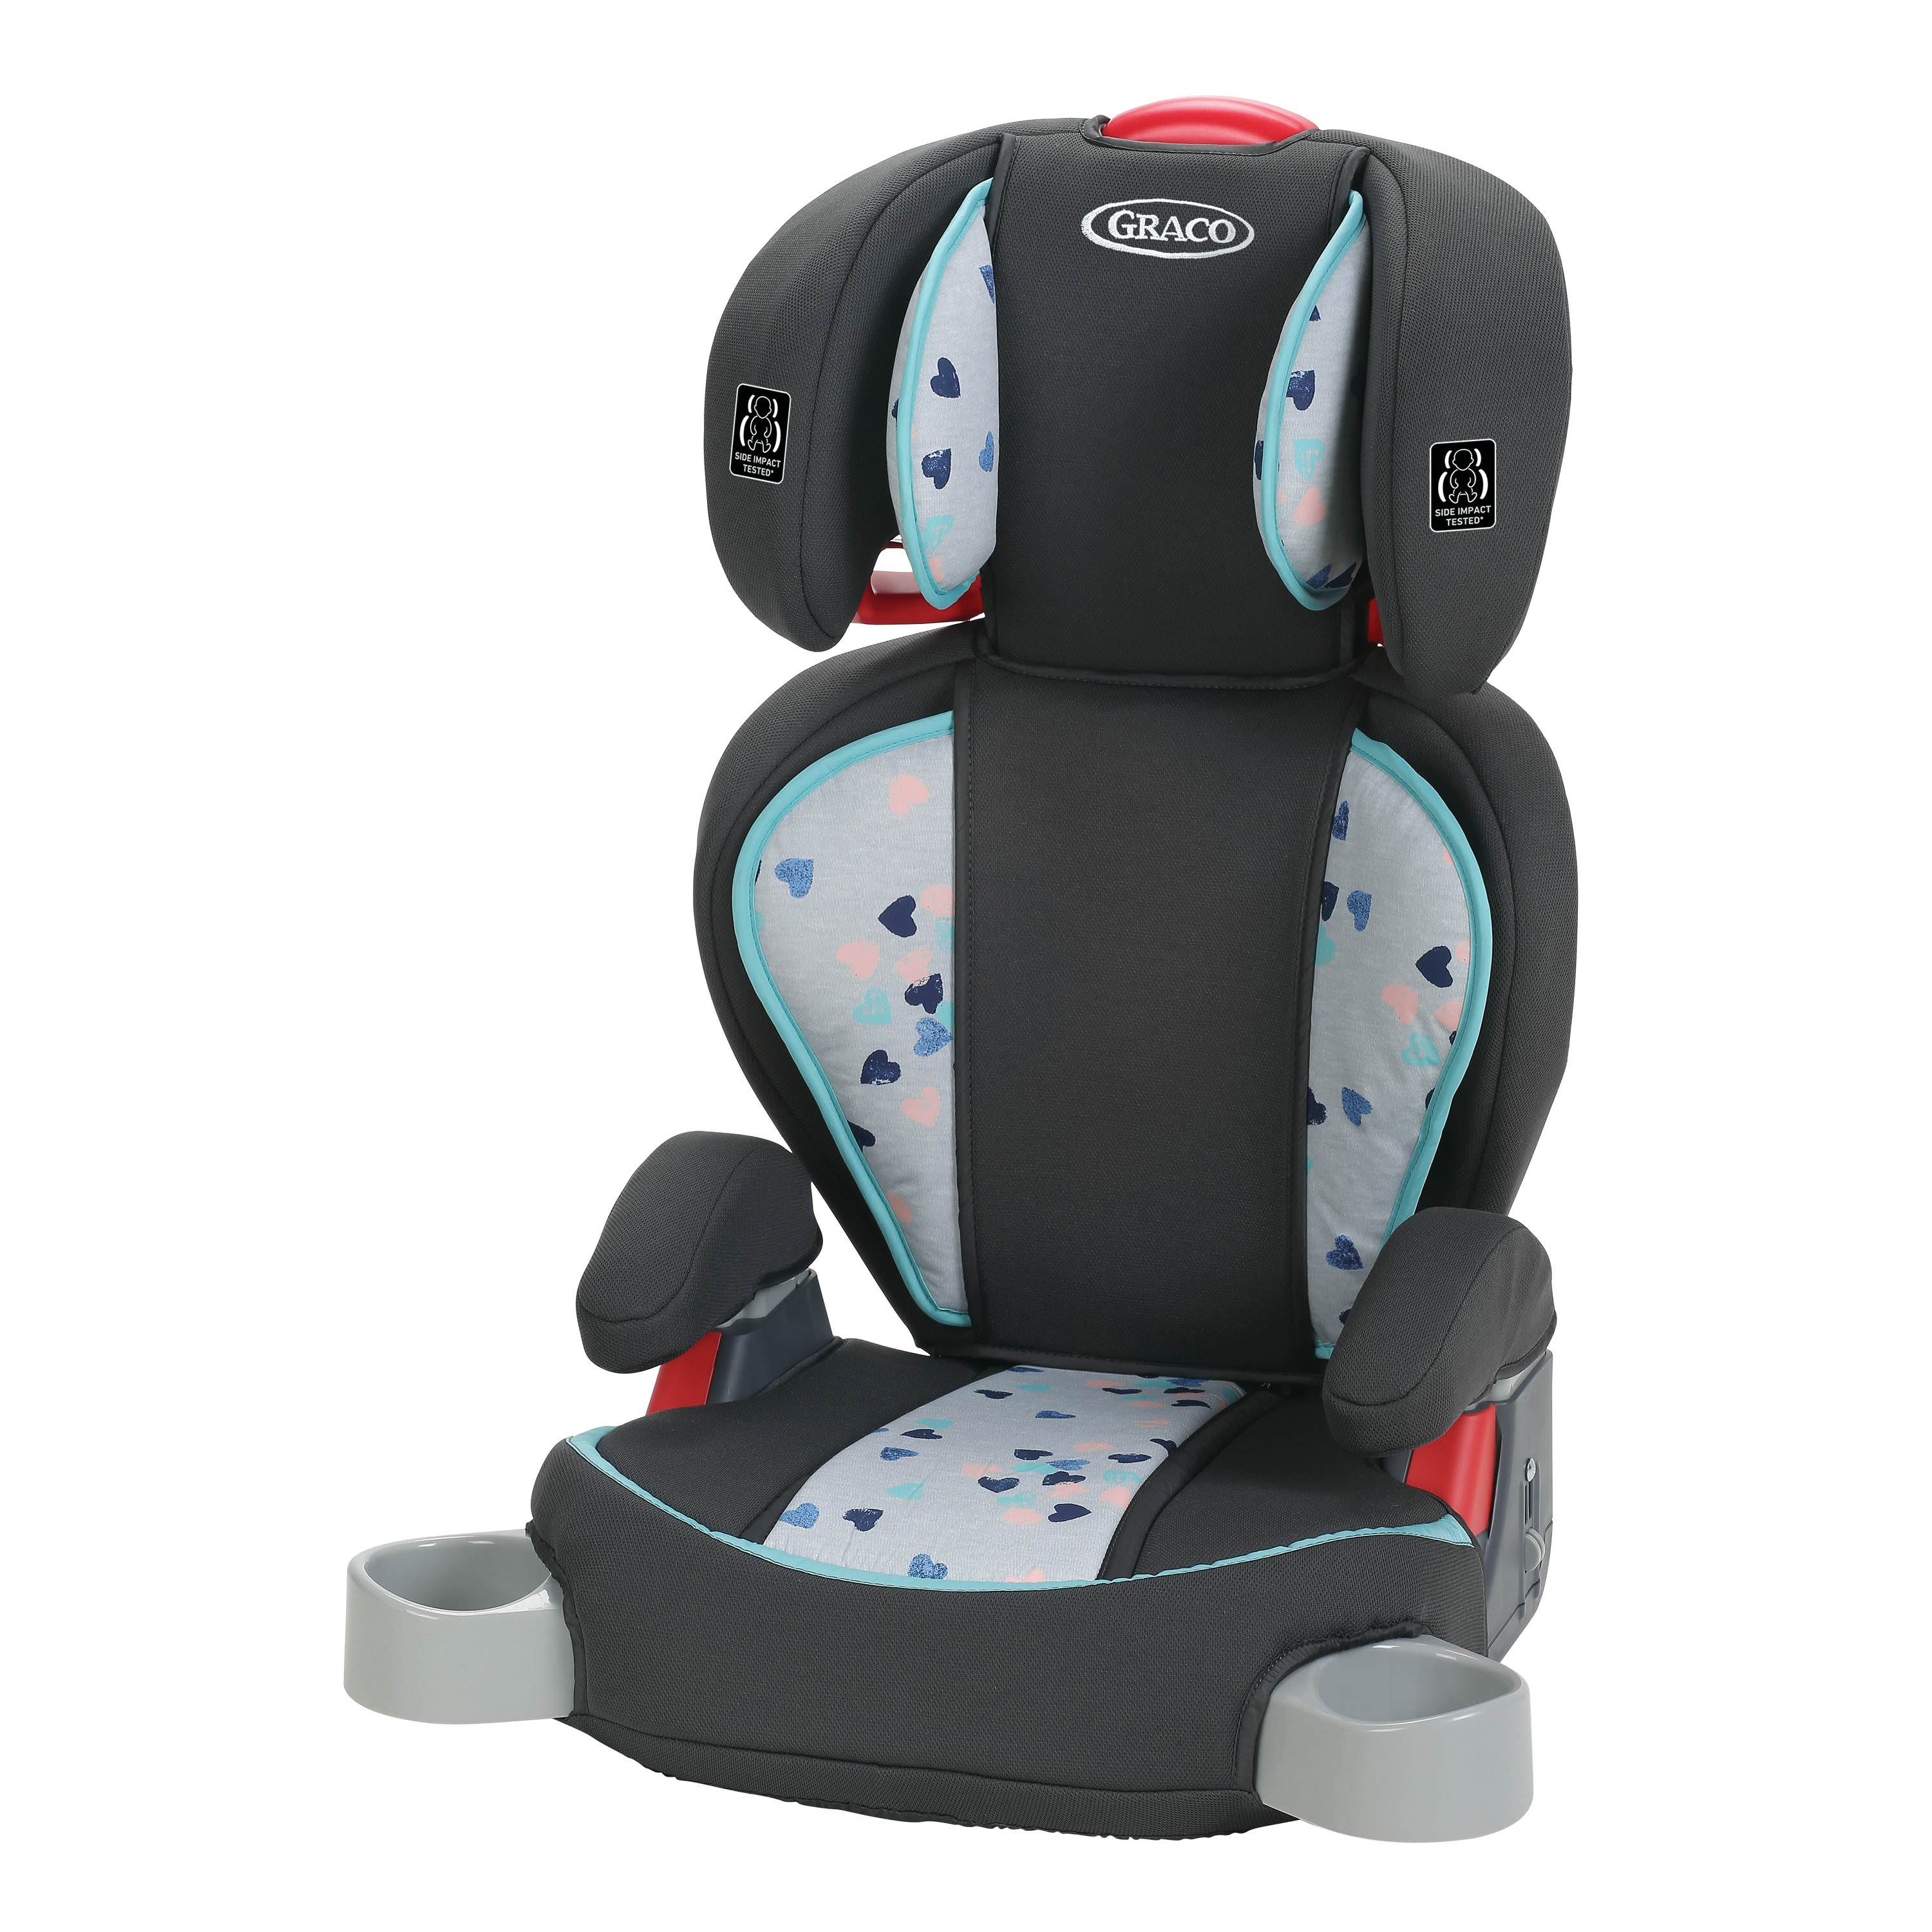 Graco TurboBooster High Back Booster Car Seat, Lauren